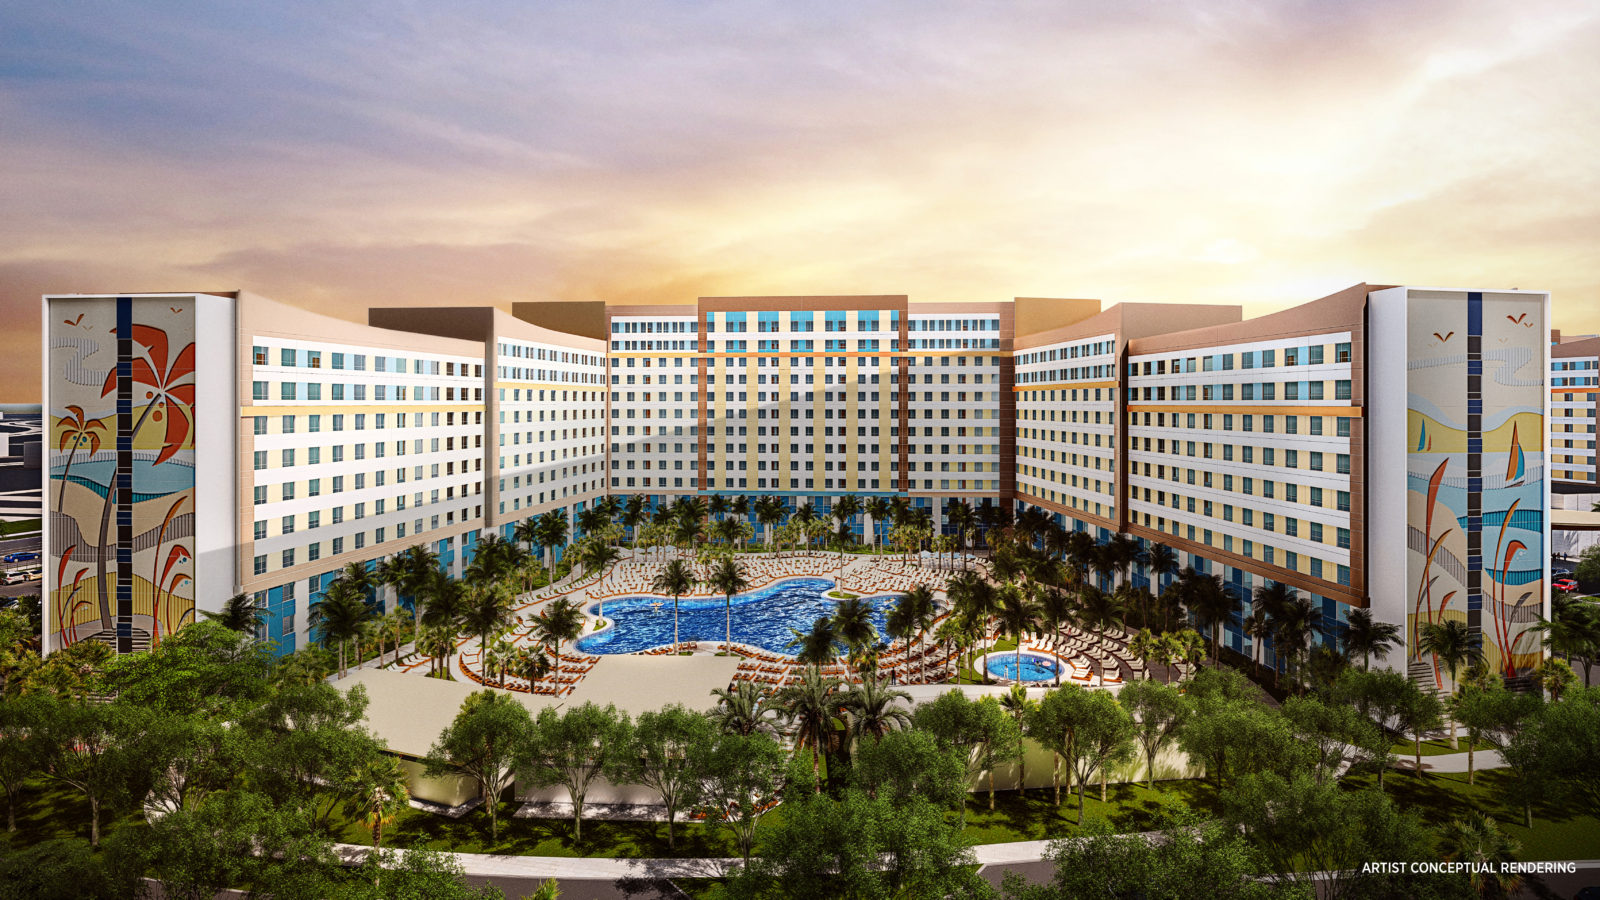 Universal Endless Summer Resort Dockside Inn and Suites Rendering